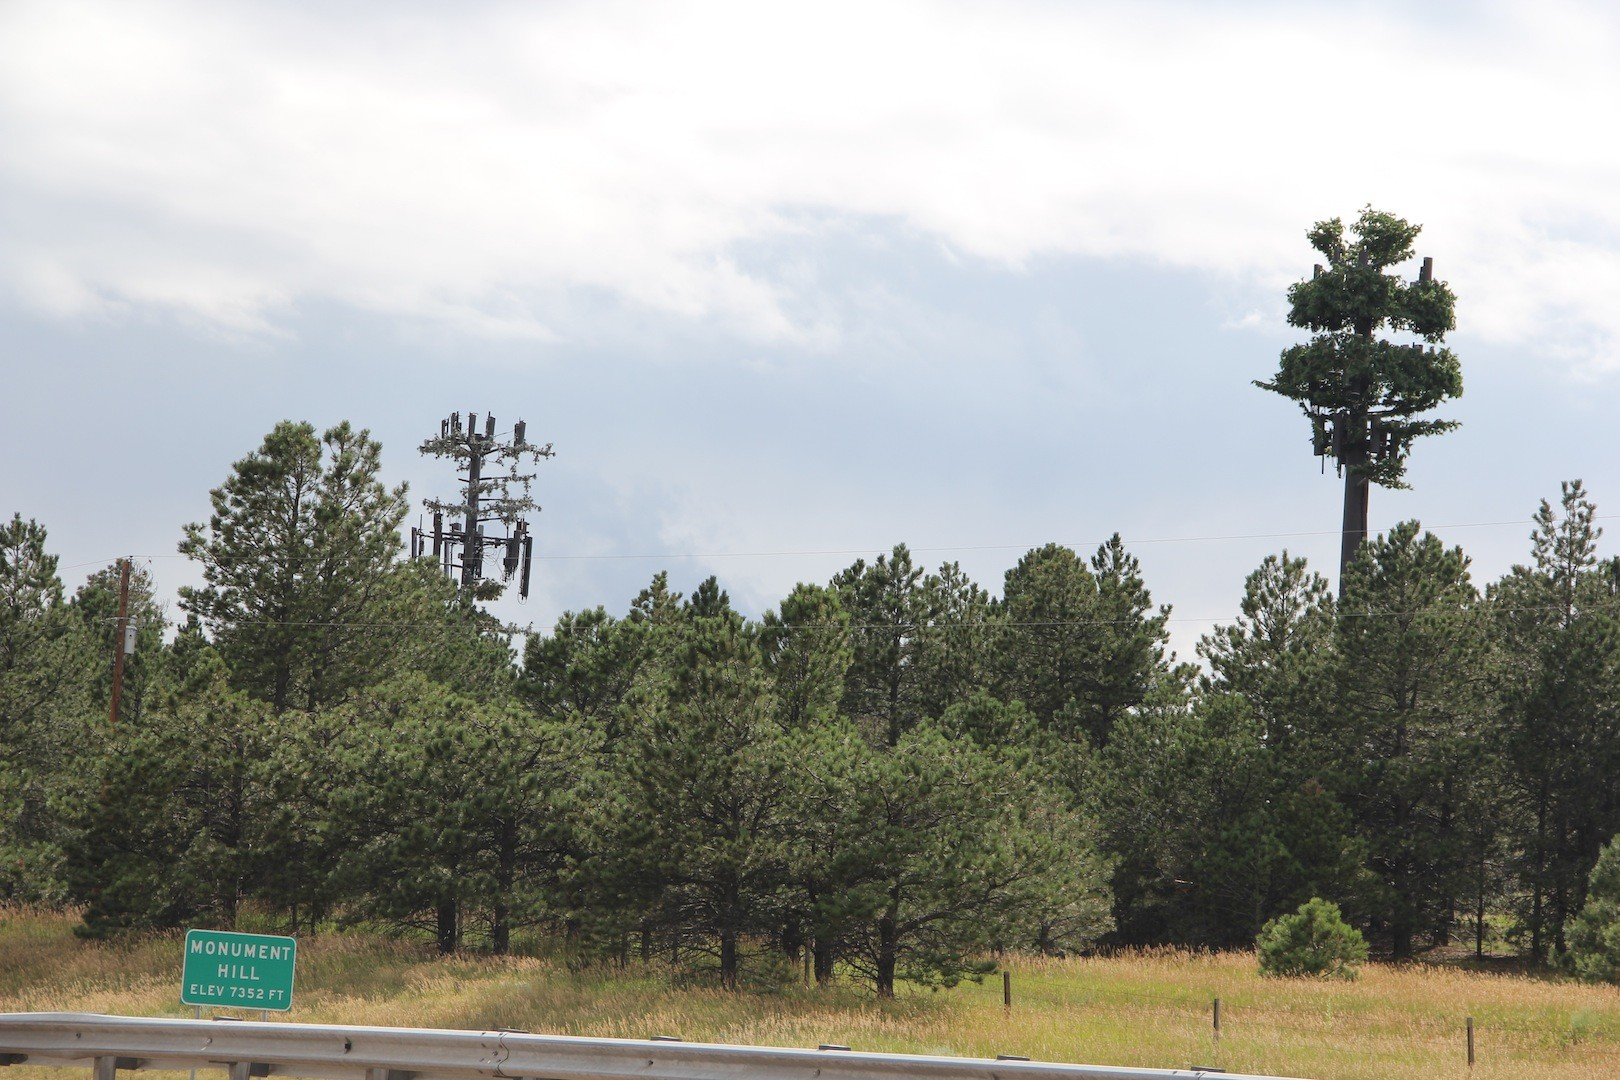 Actually two towers, semi-disguised as tall pine trees, top Monument Hill and can be seen from the road.